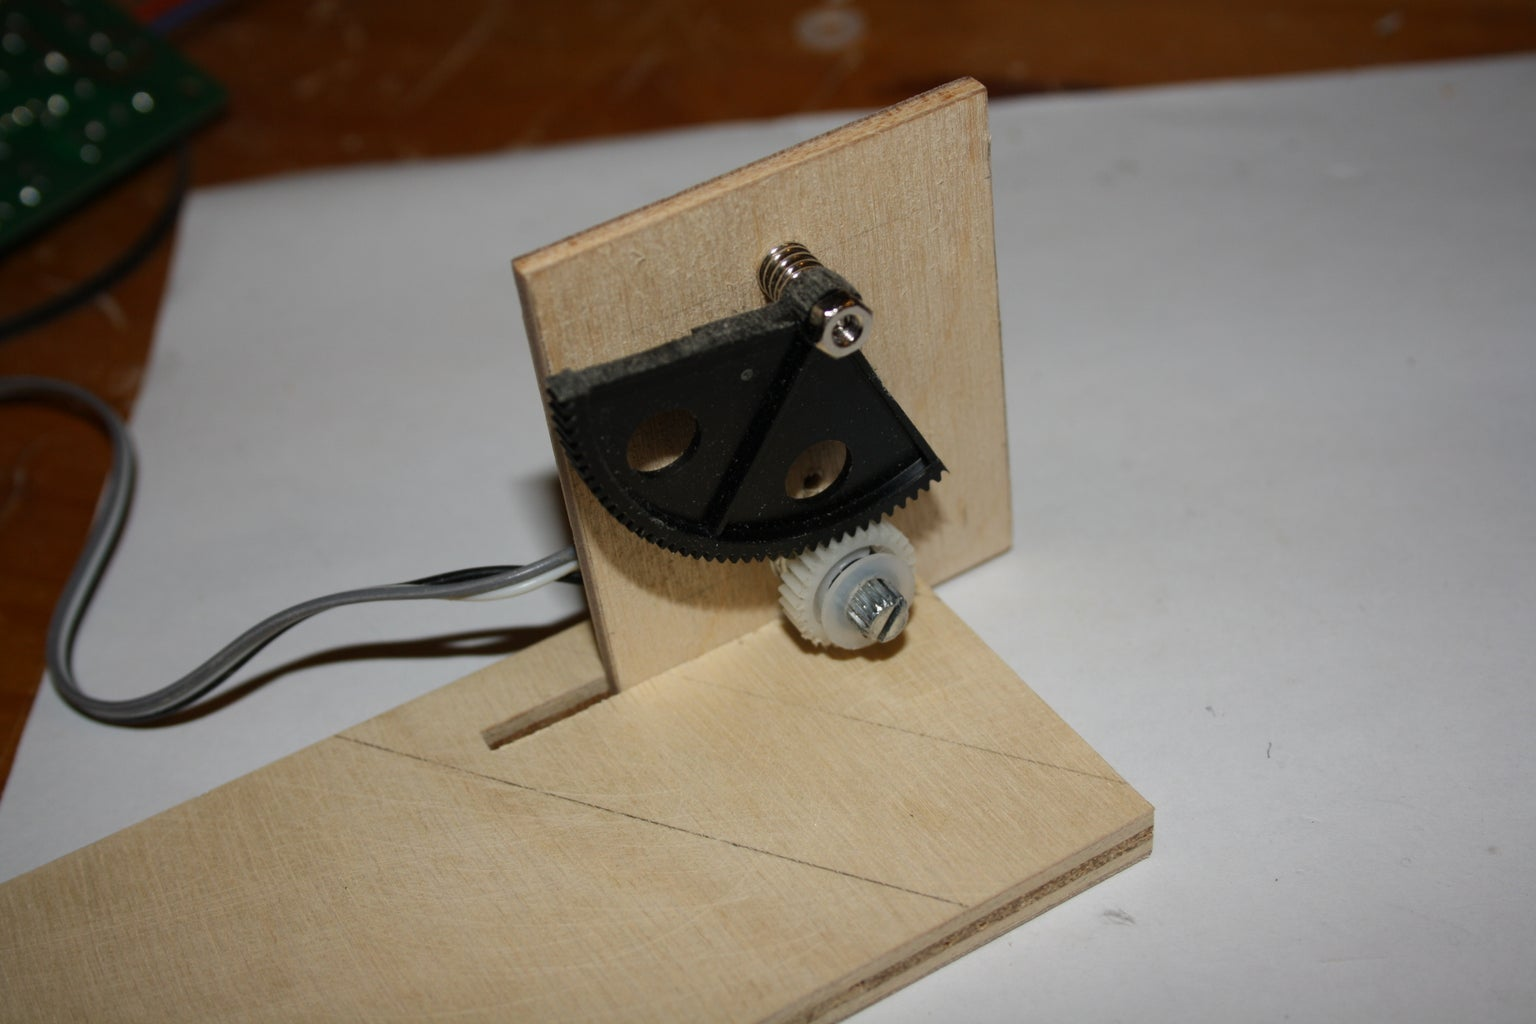 The Foot Pedal | Making the Mechanism